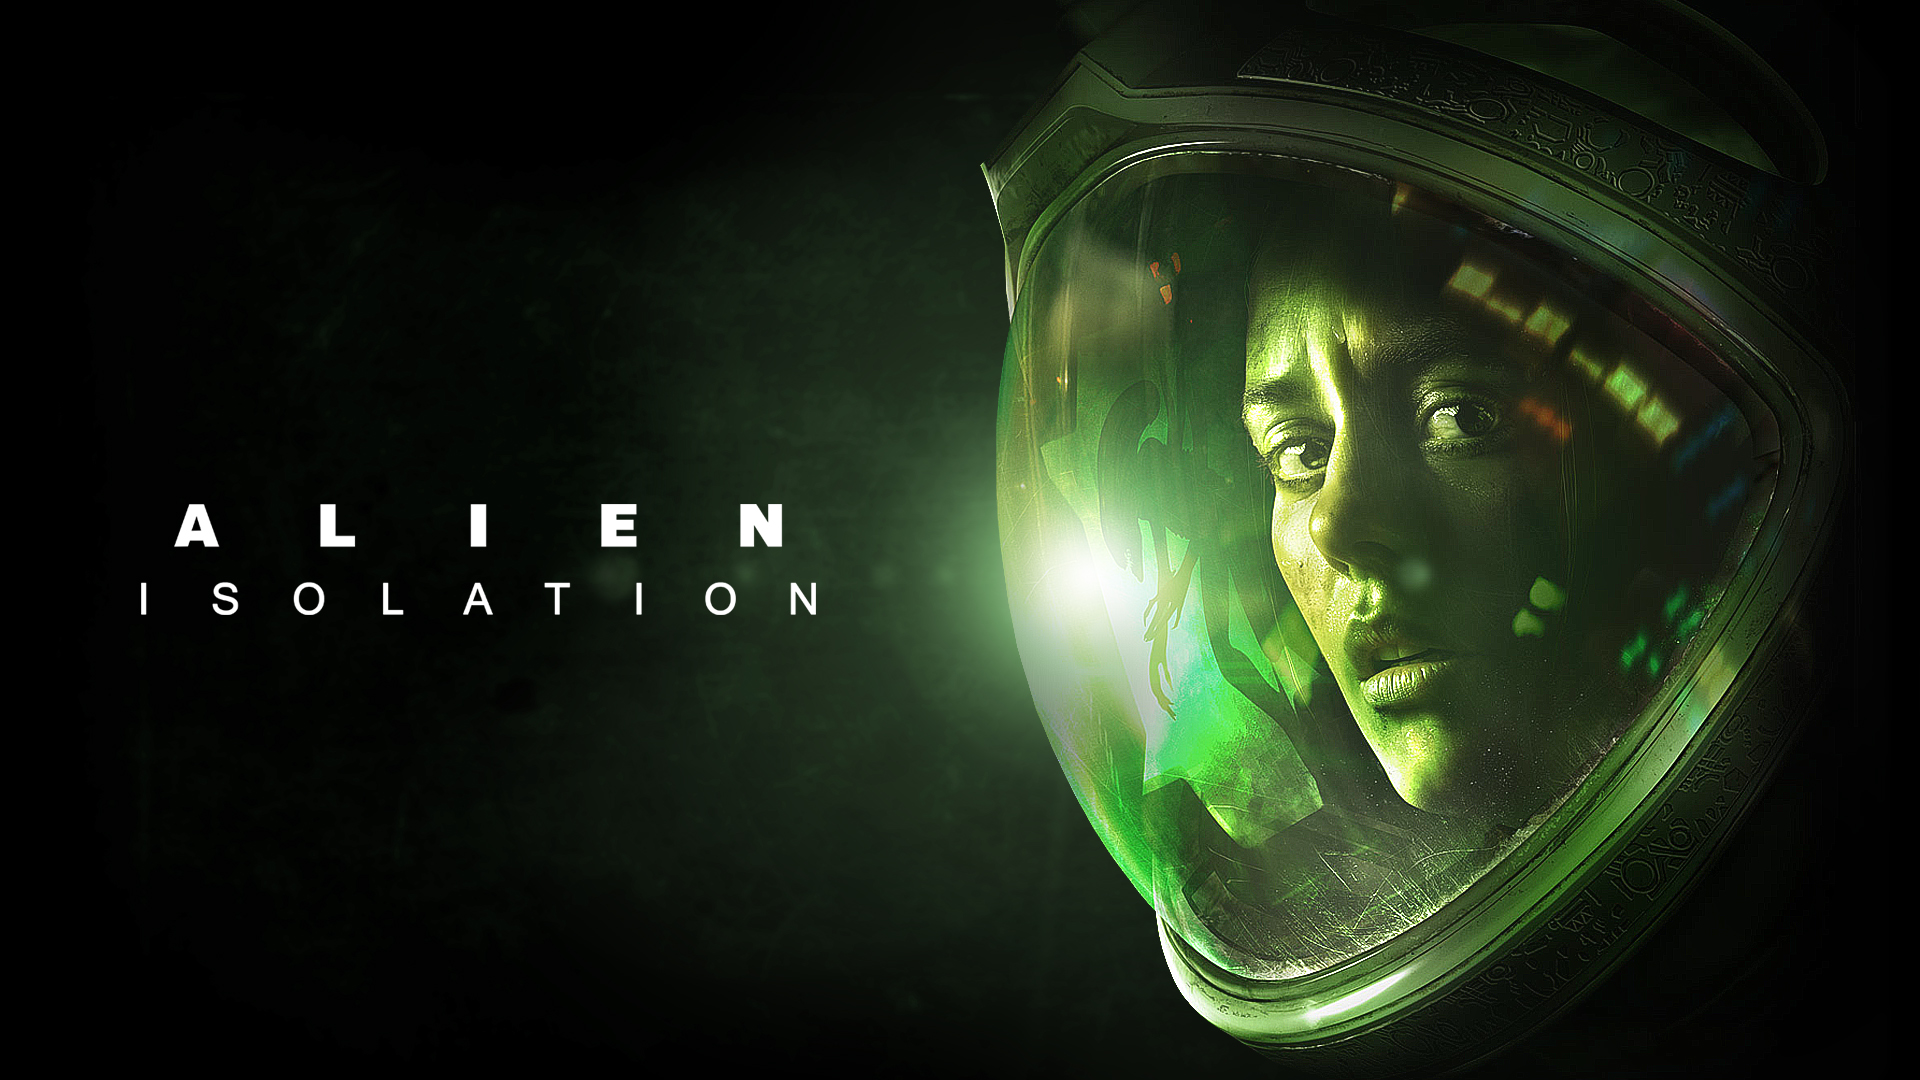 Alien-Isolation entete